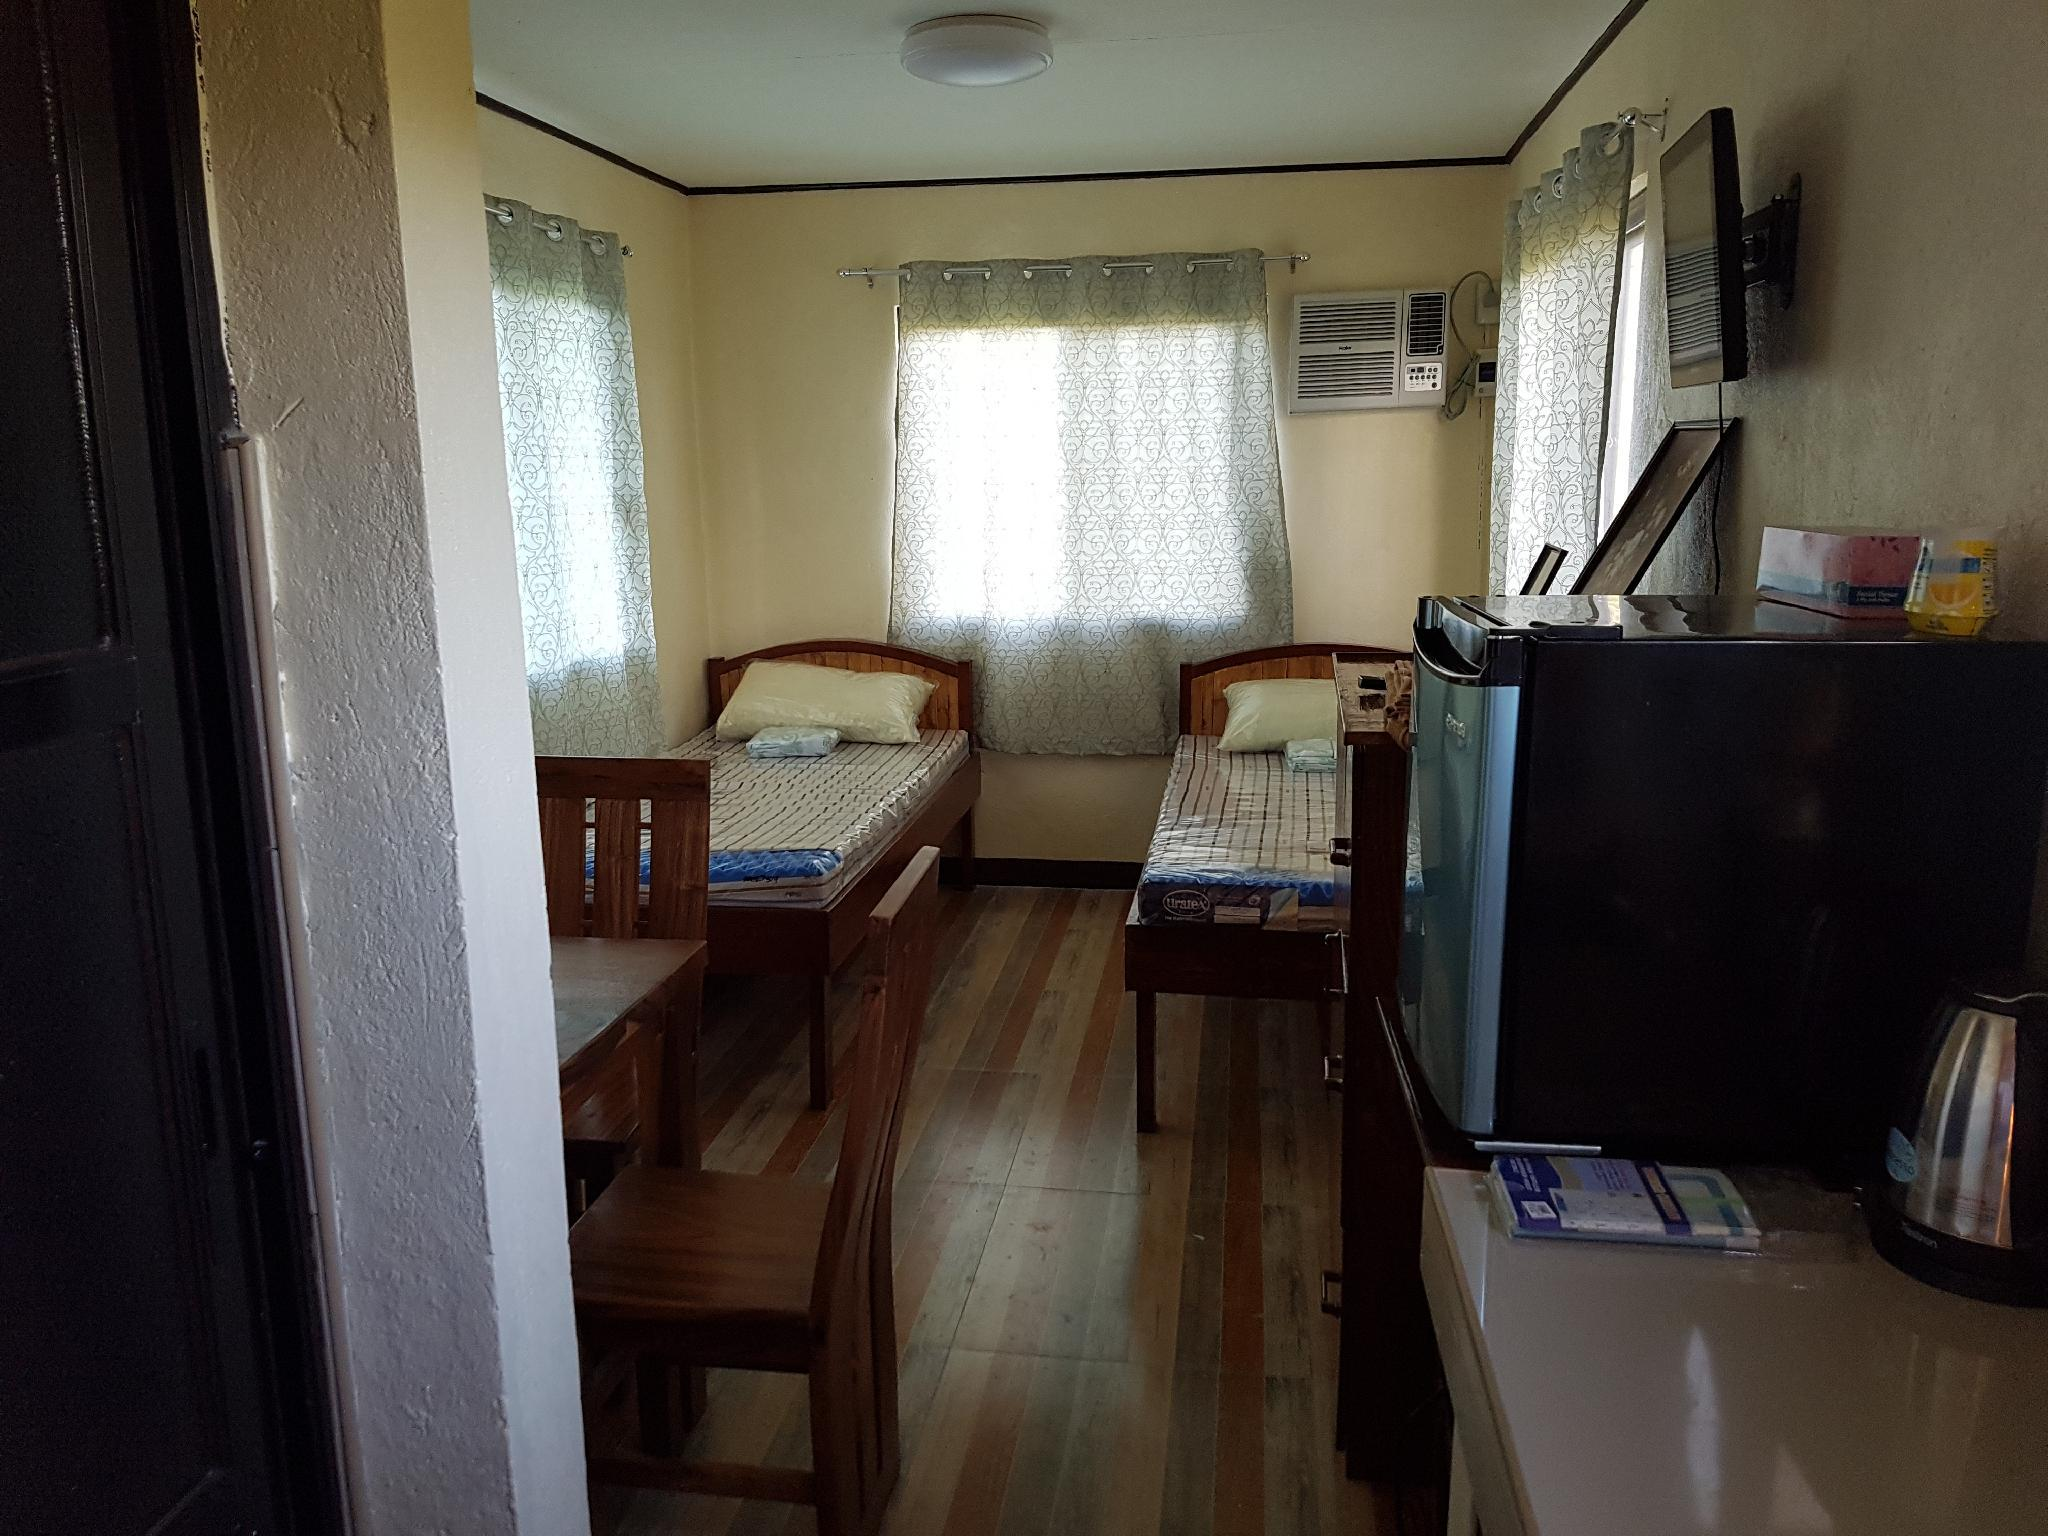 Tagaytay S&m Guesthouse